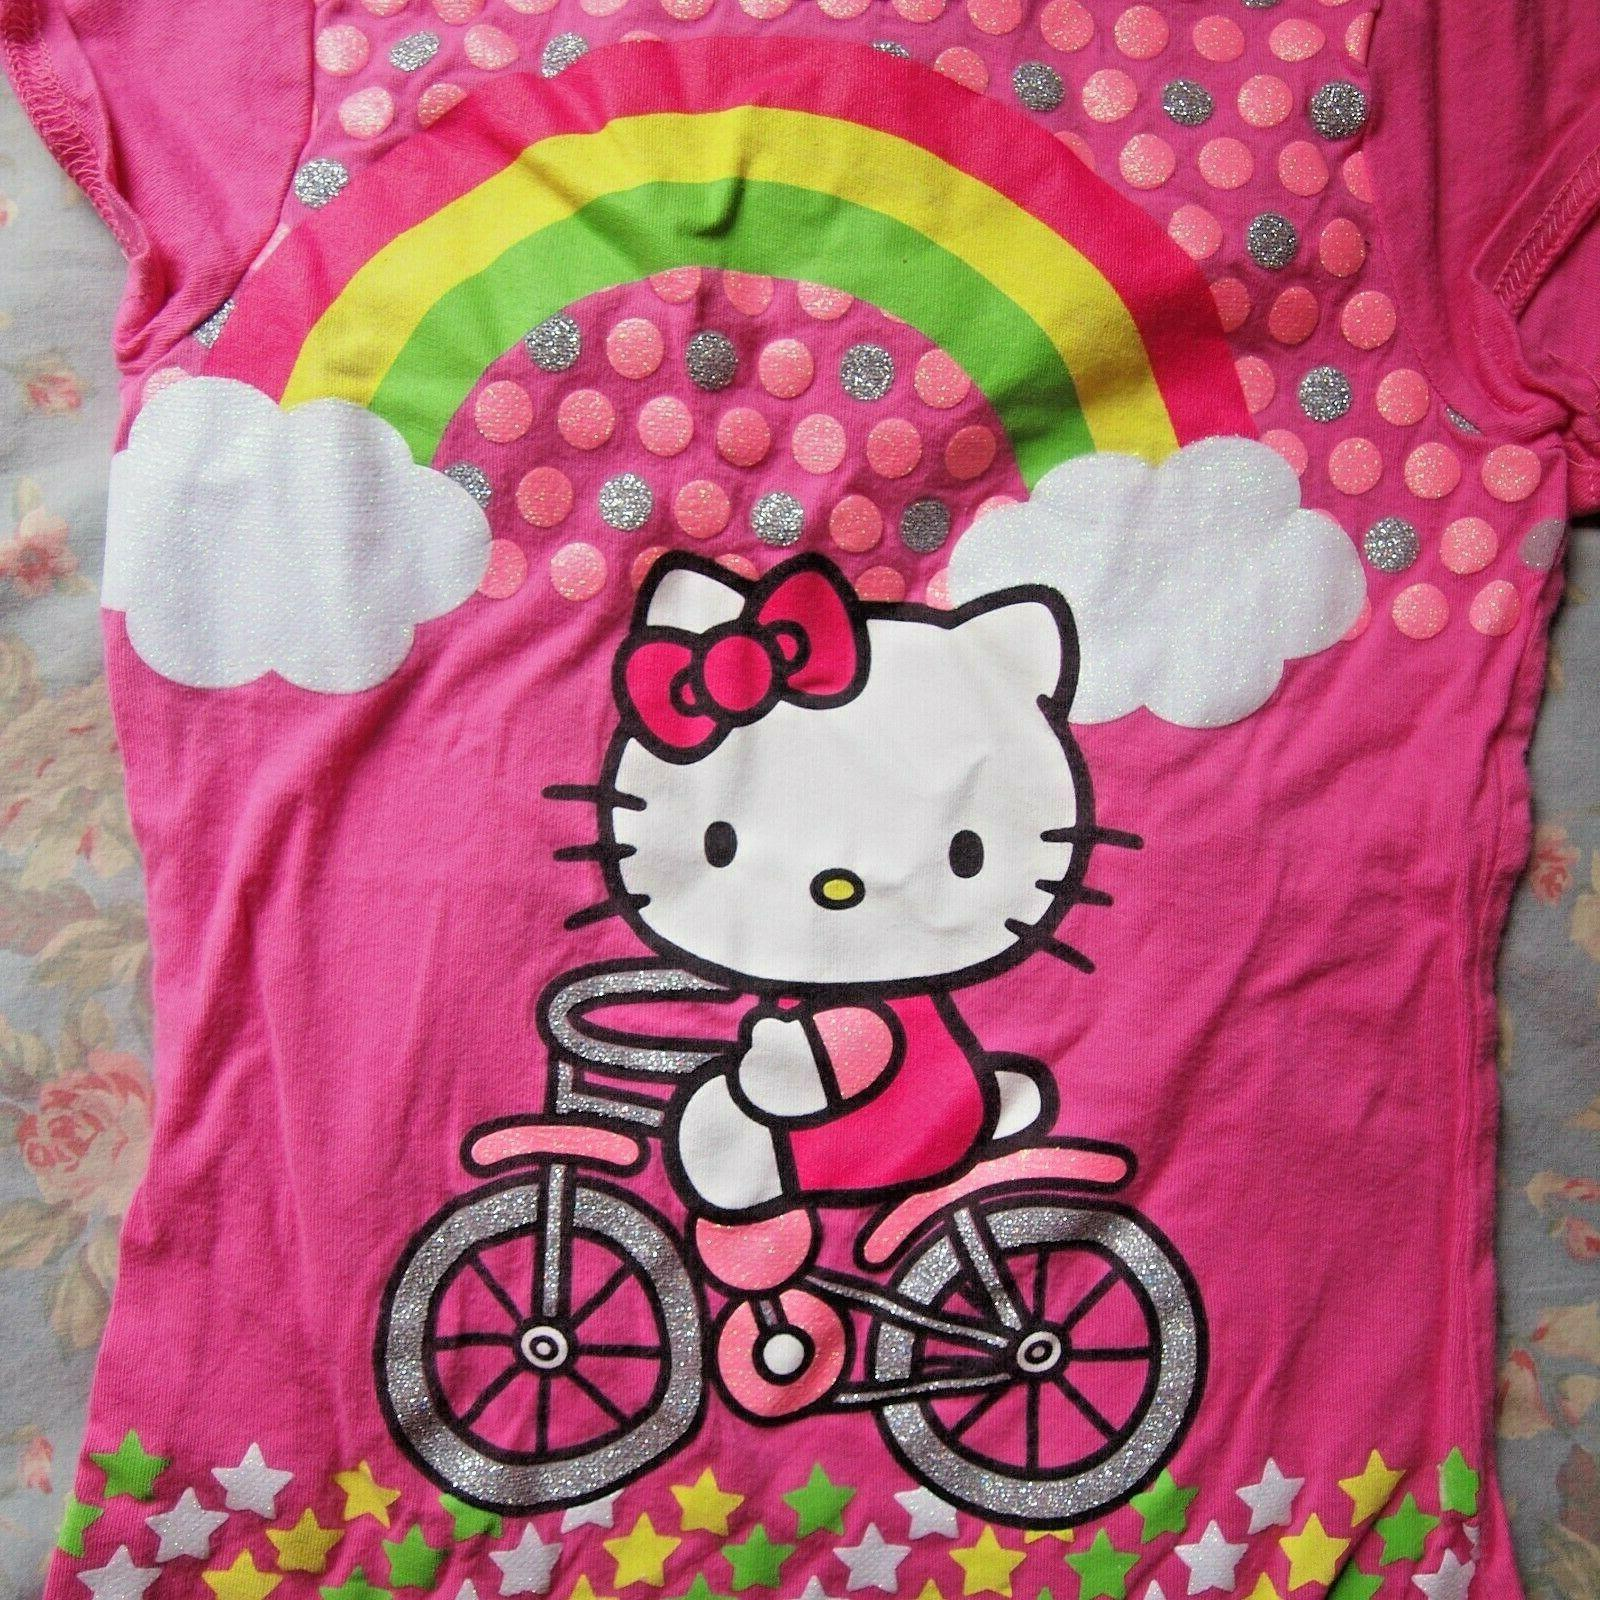 Adorable hello kitty size 6